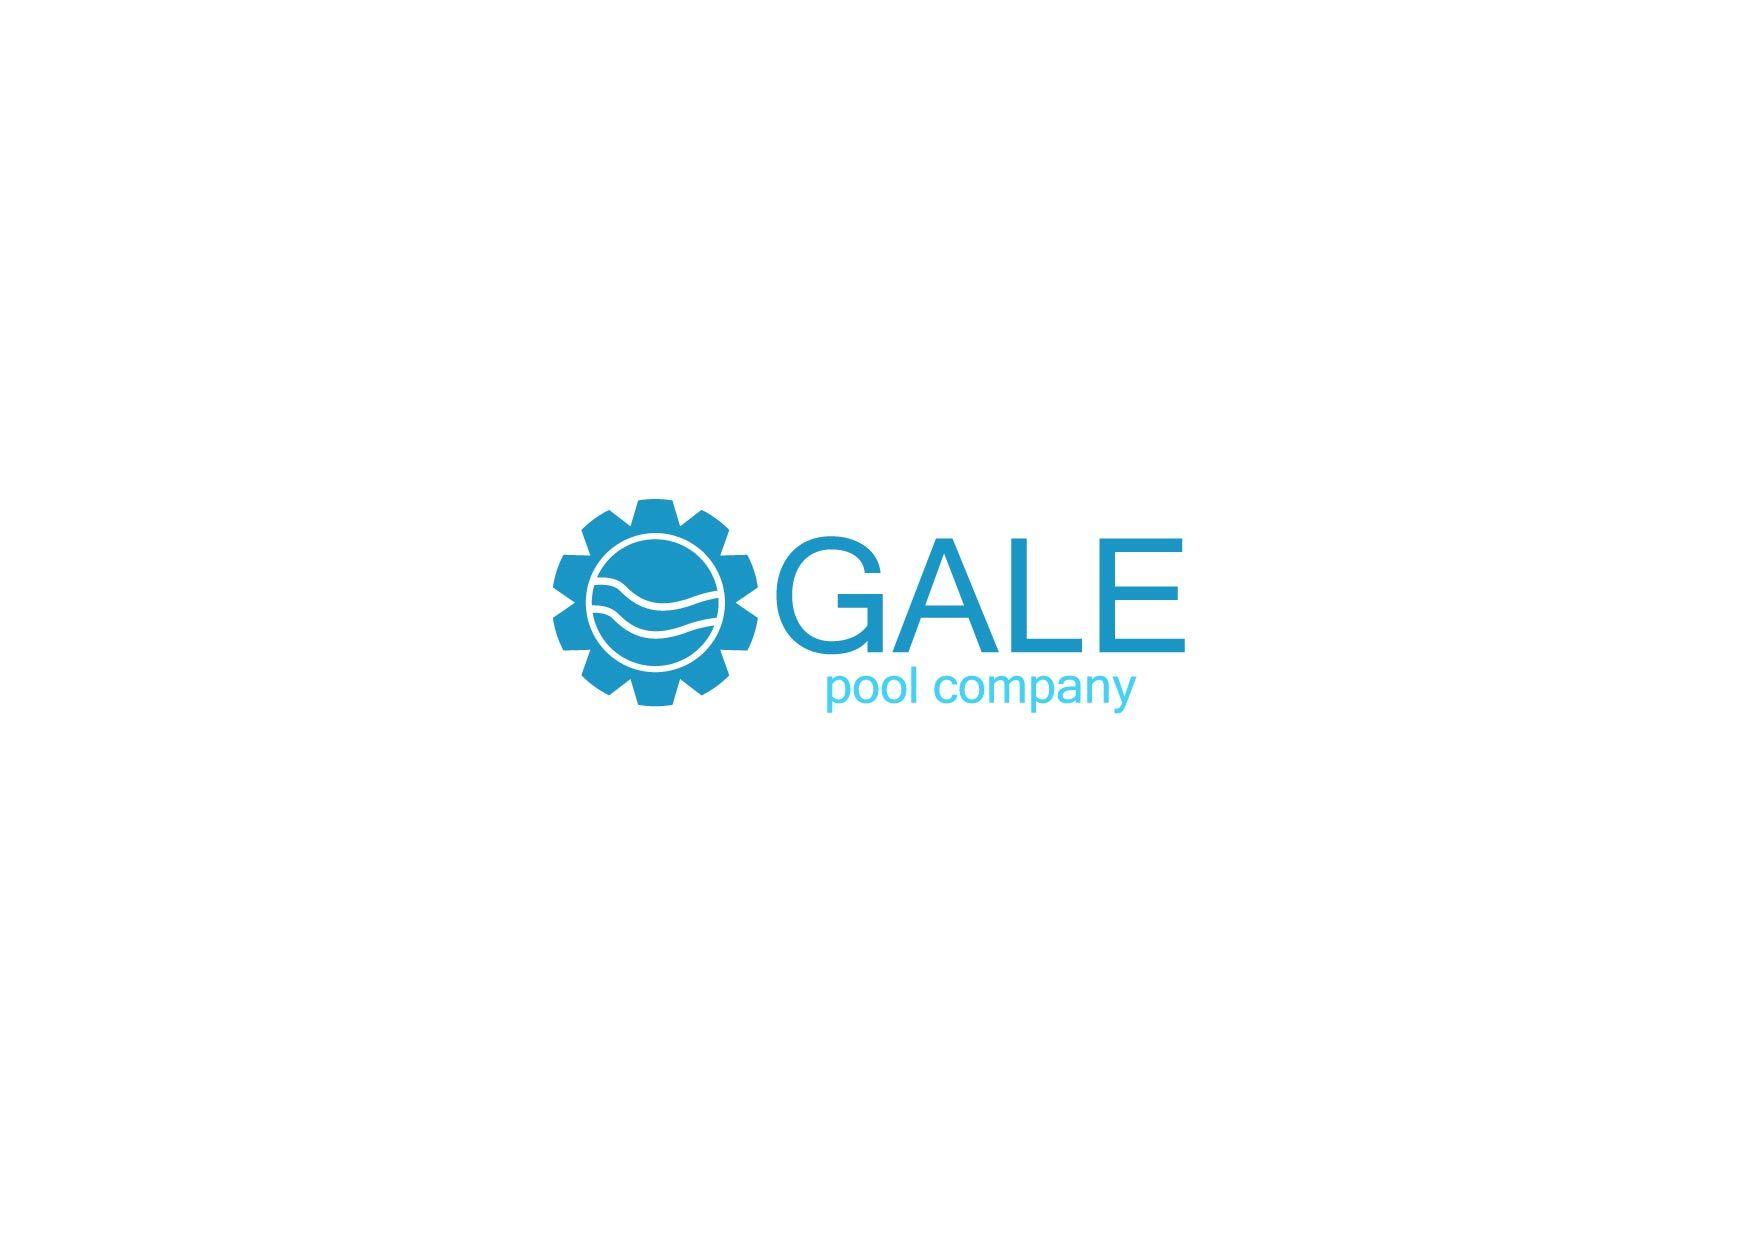 Logo Design by Osi Indra - Entry No. 34 in the Logo Design Contest Imaginative Logo Design for Gale Pool Company.